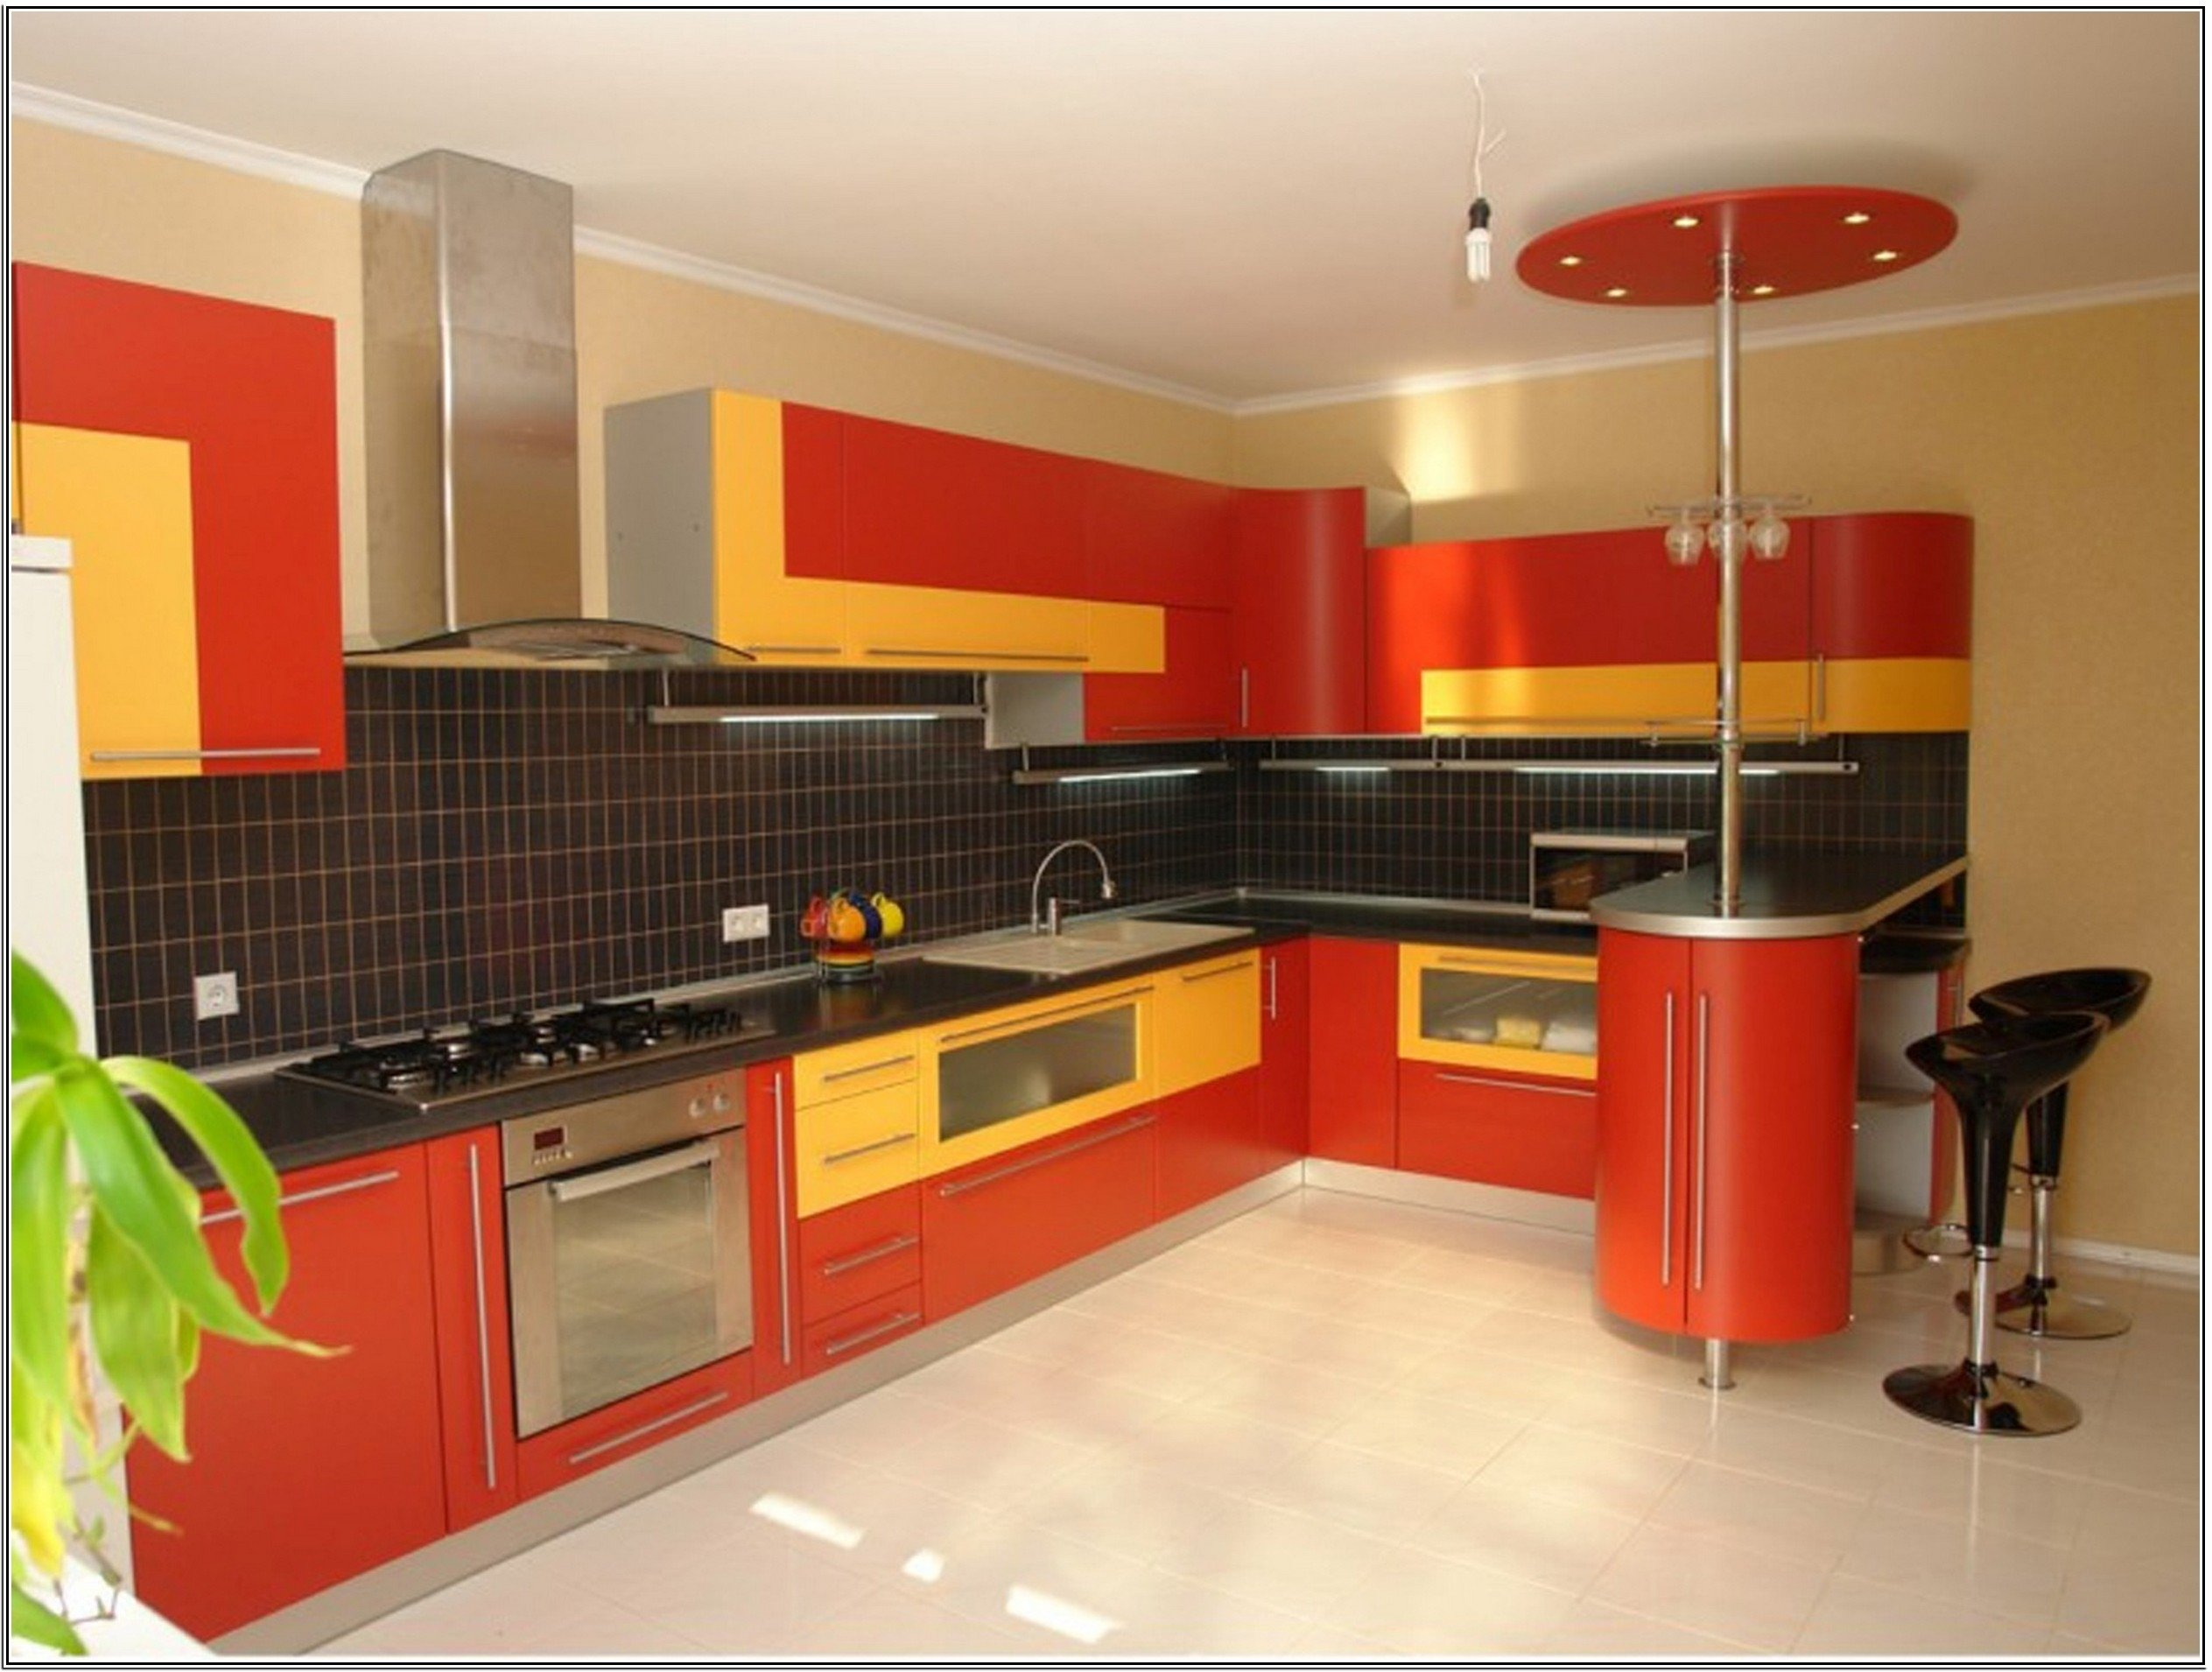 yellow and red kitchen   My Web Value